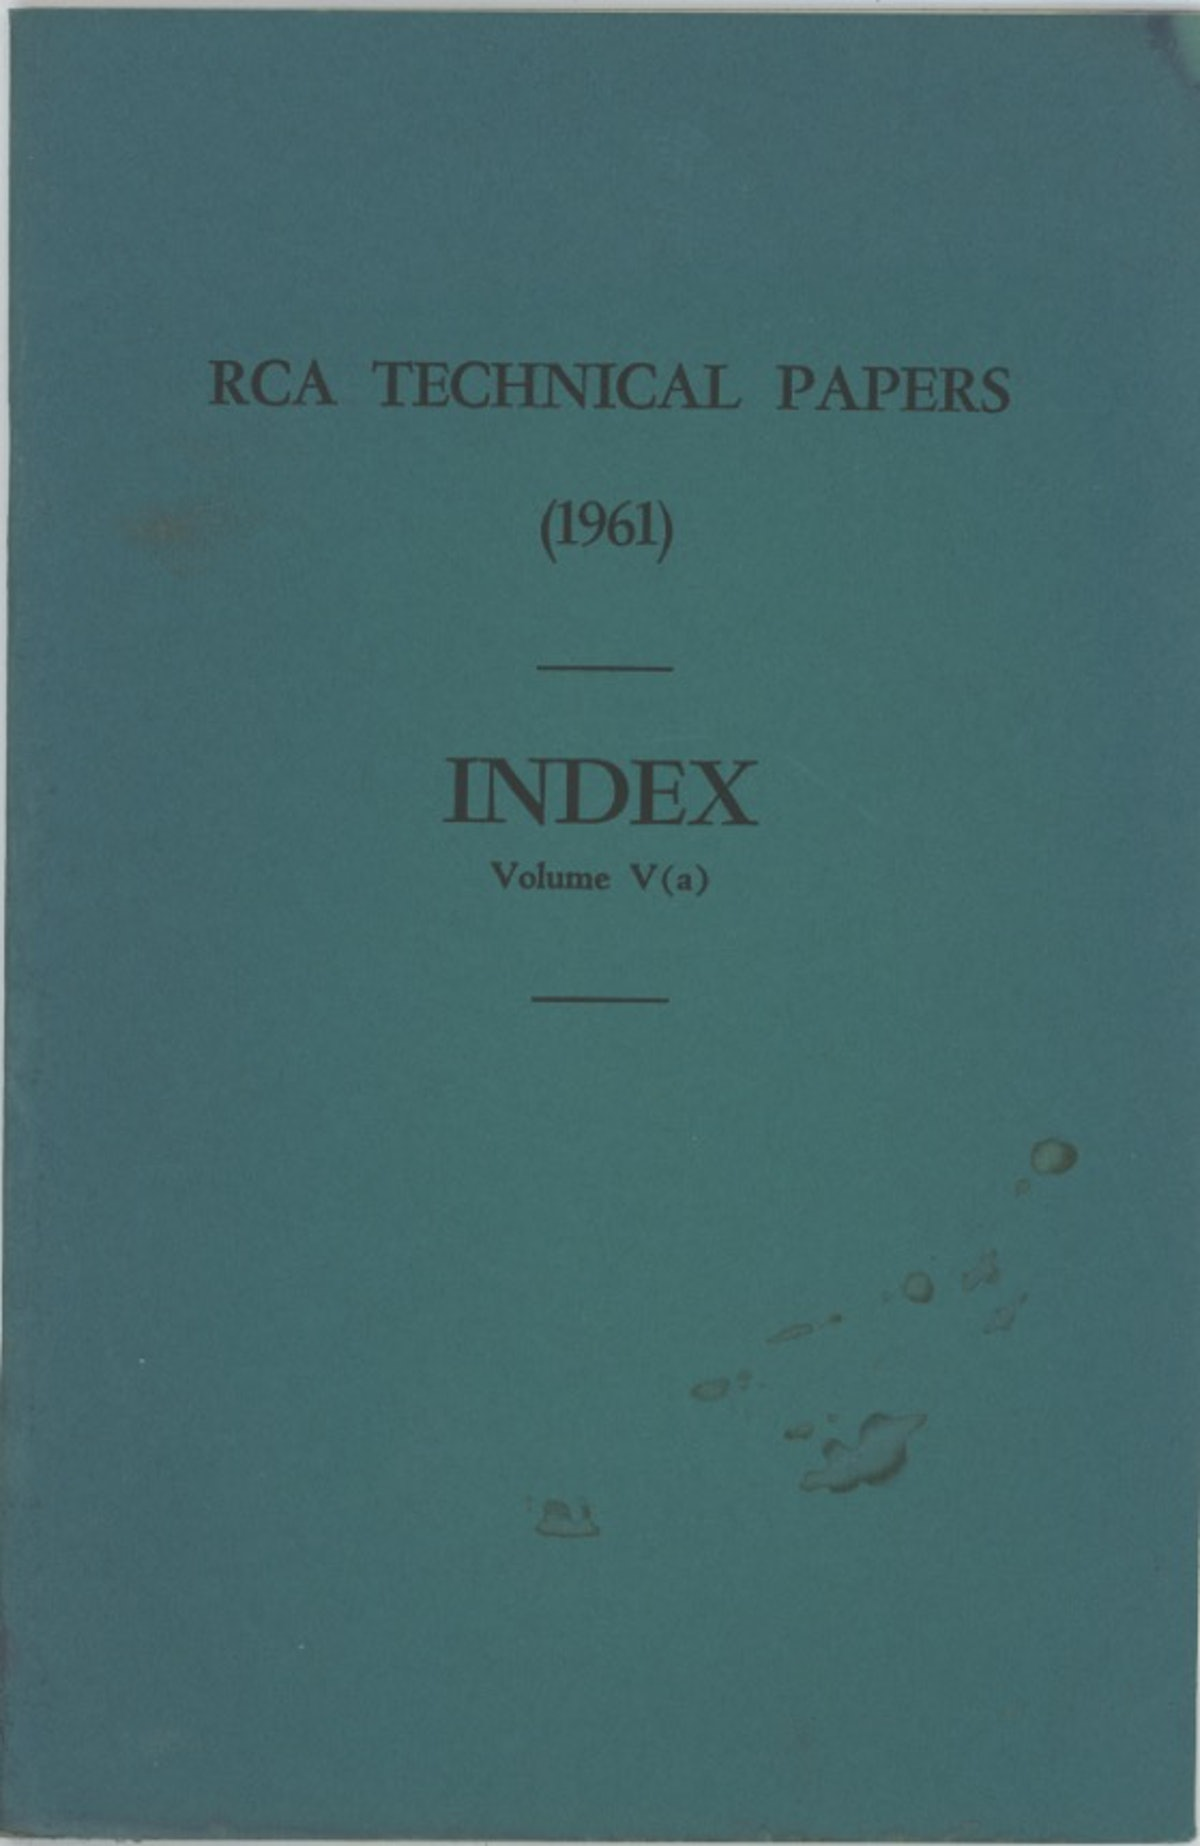 RCA Technical Papers Index Volume V (a)